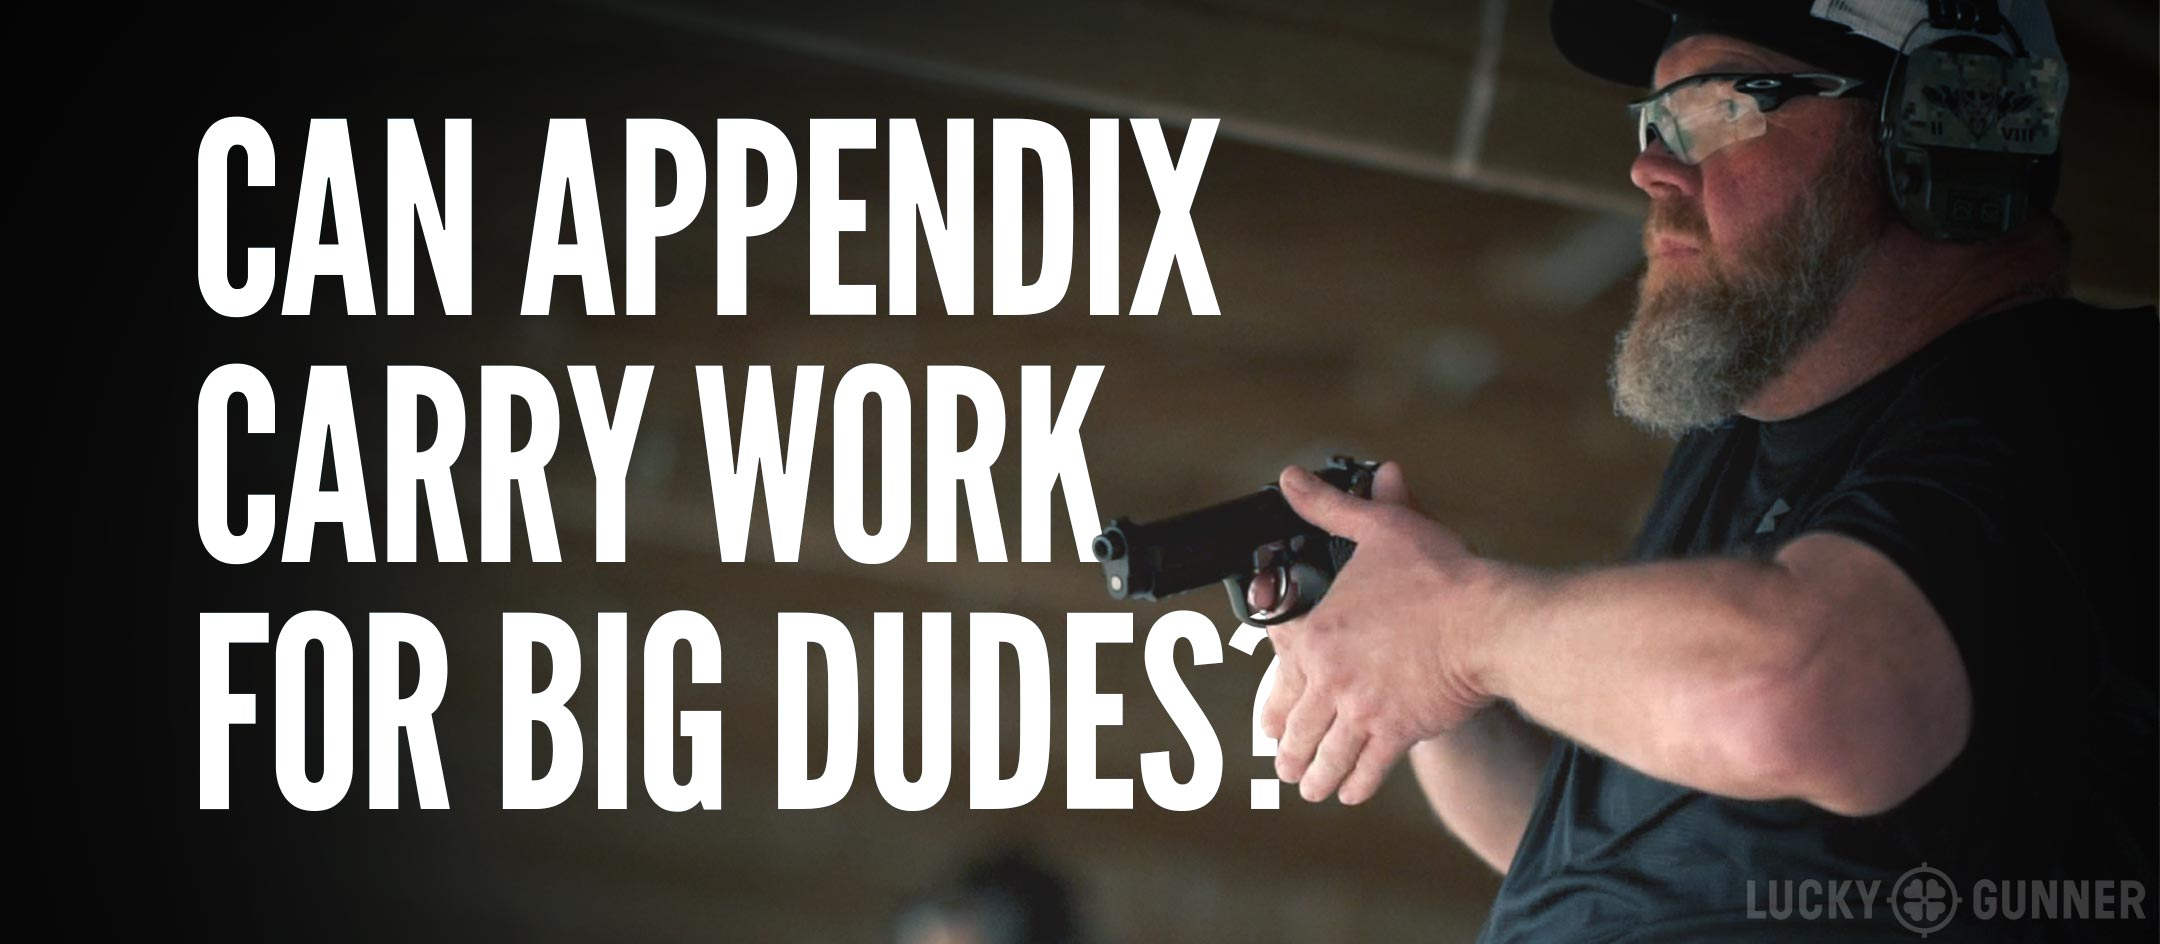 Can Appendix Carry Work for Big Dudes? - Lucky Gunner Lounge